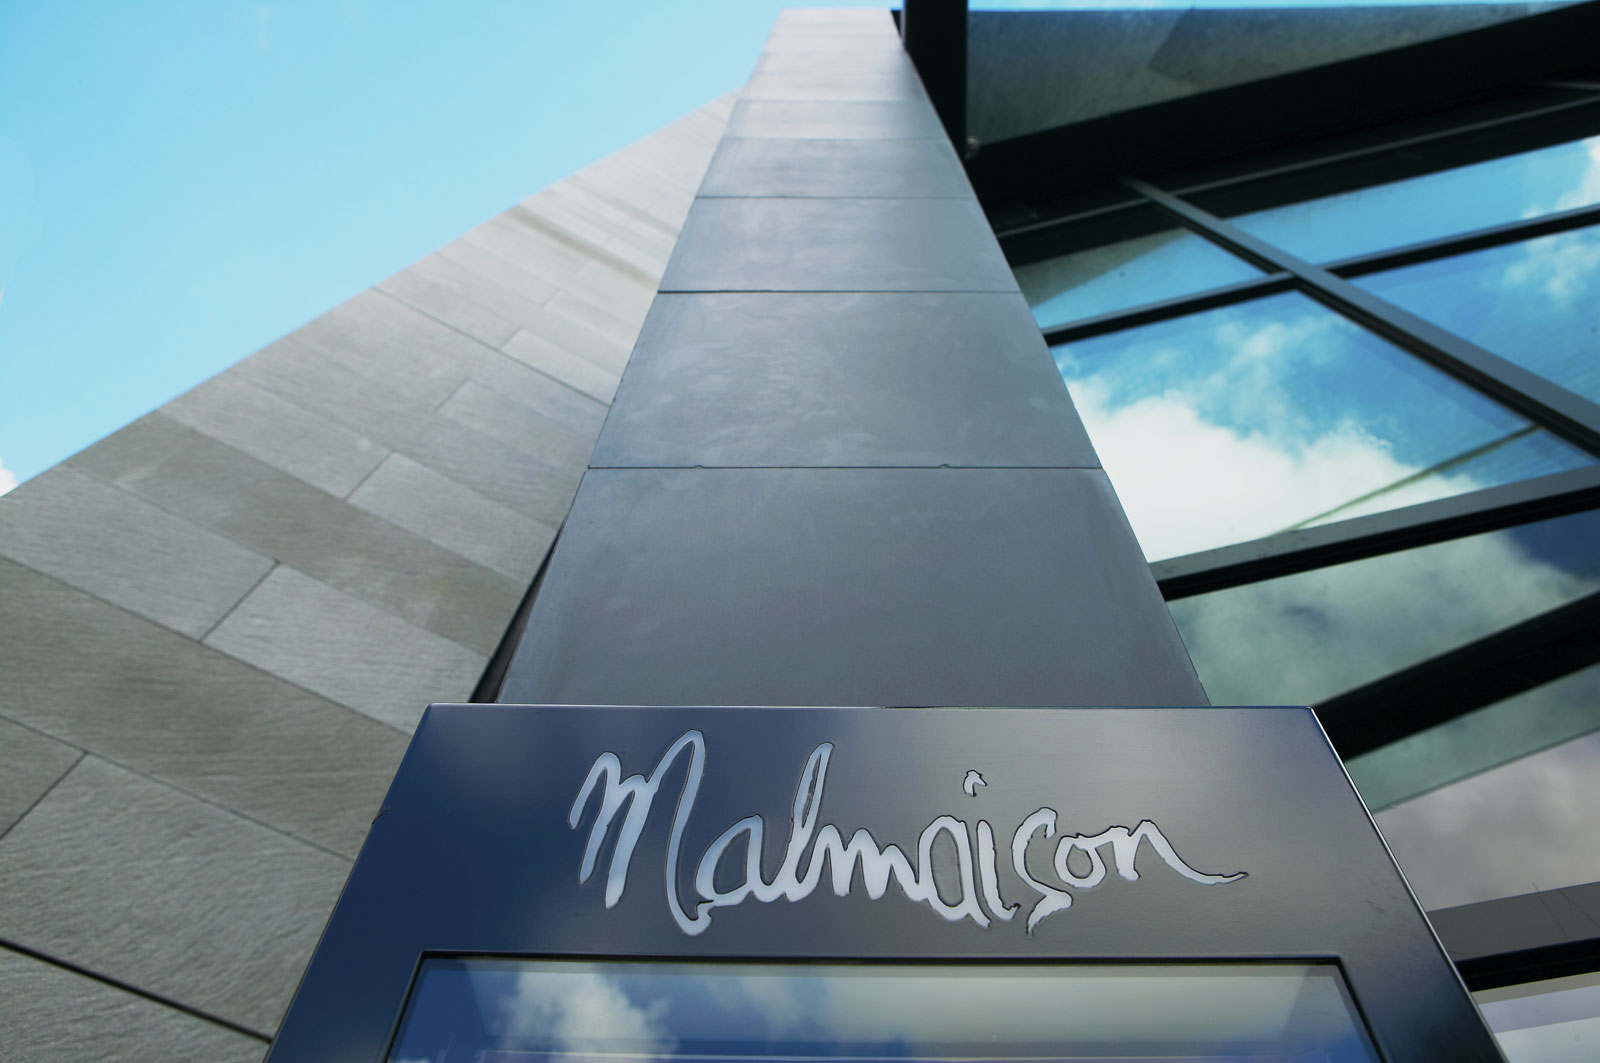 Malmaison Hotel Liverpool | Architect Photography | Commercial Photography